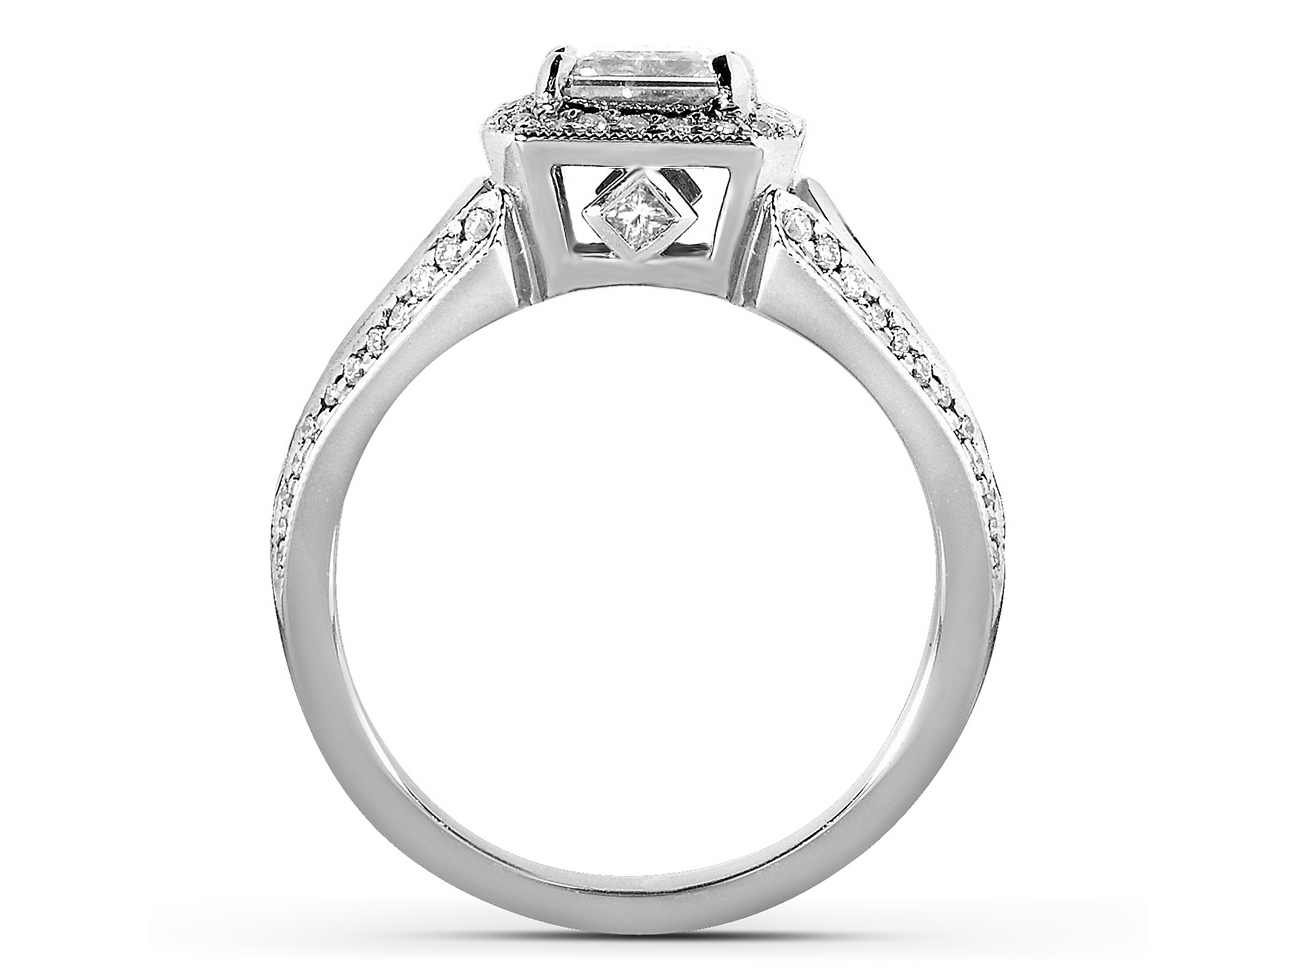 Asscher Cut Diamond Halo Engagement Ring with Kite Shaped Accents